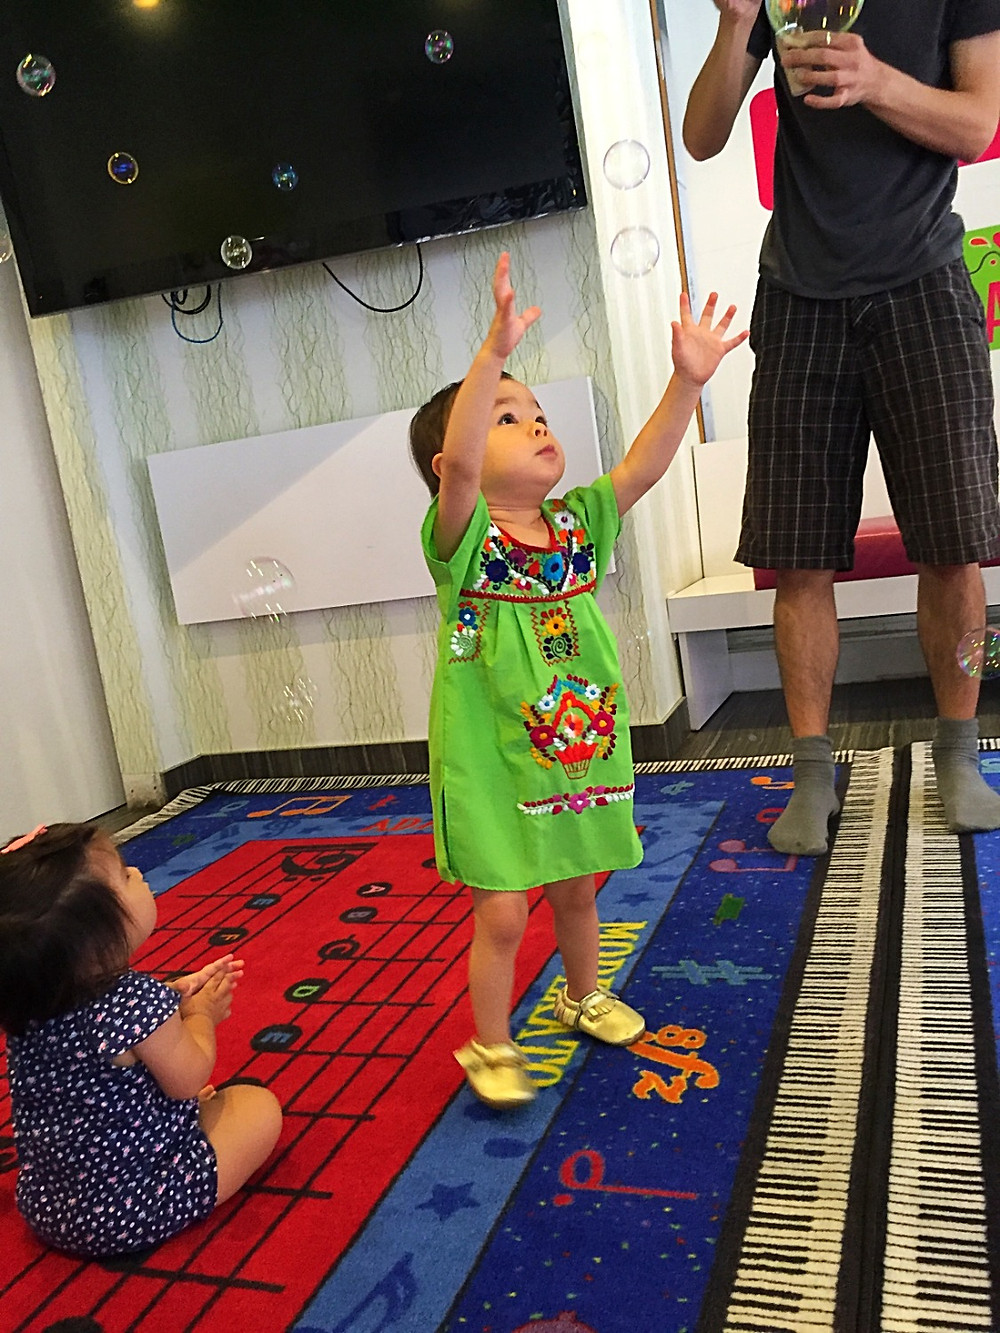 Moosiki Kids, best baby music classes in NYC, Curious G and Me, Winter indoor fun guide for kids